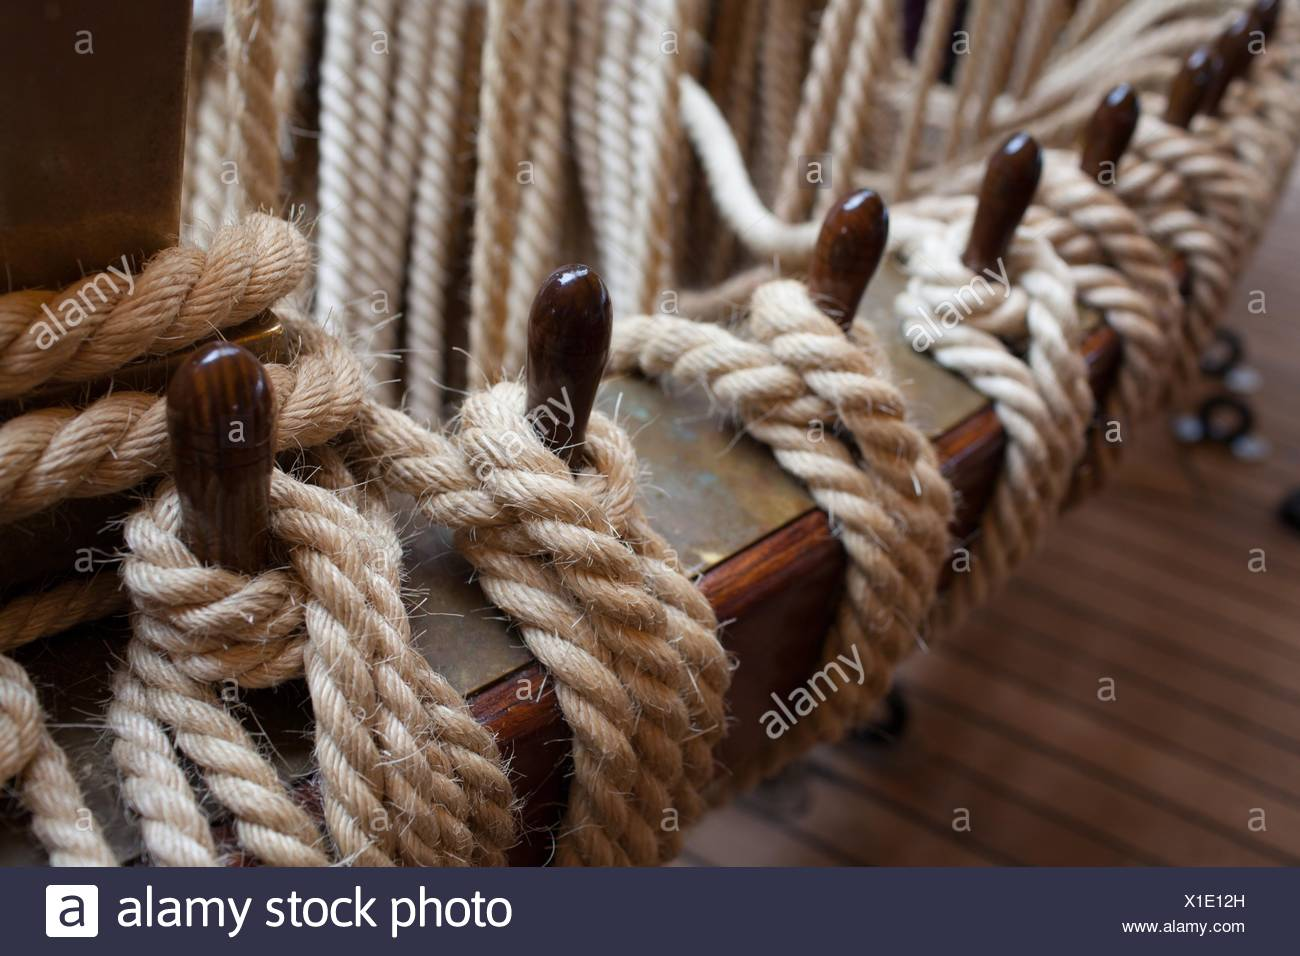 Hemp ropes tied to wooden beams, part of the rigging system